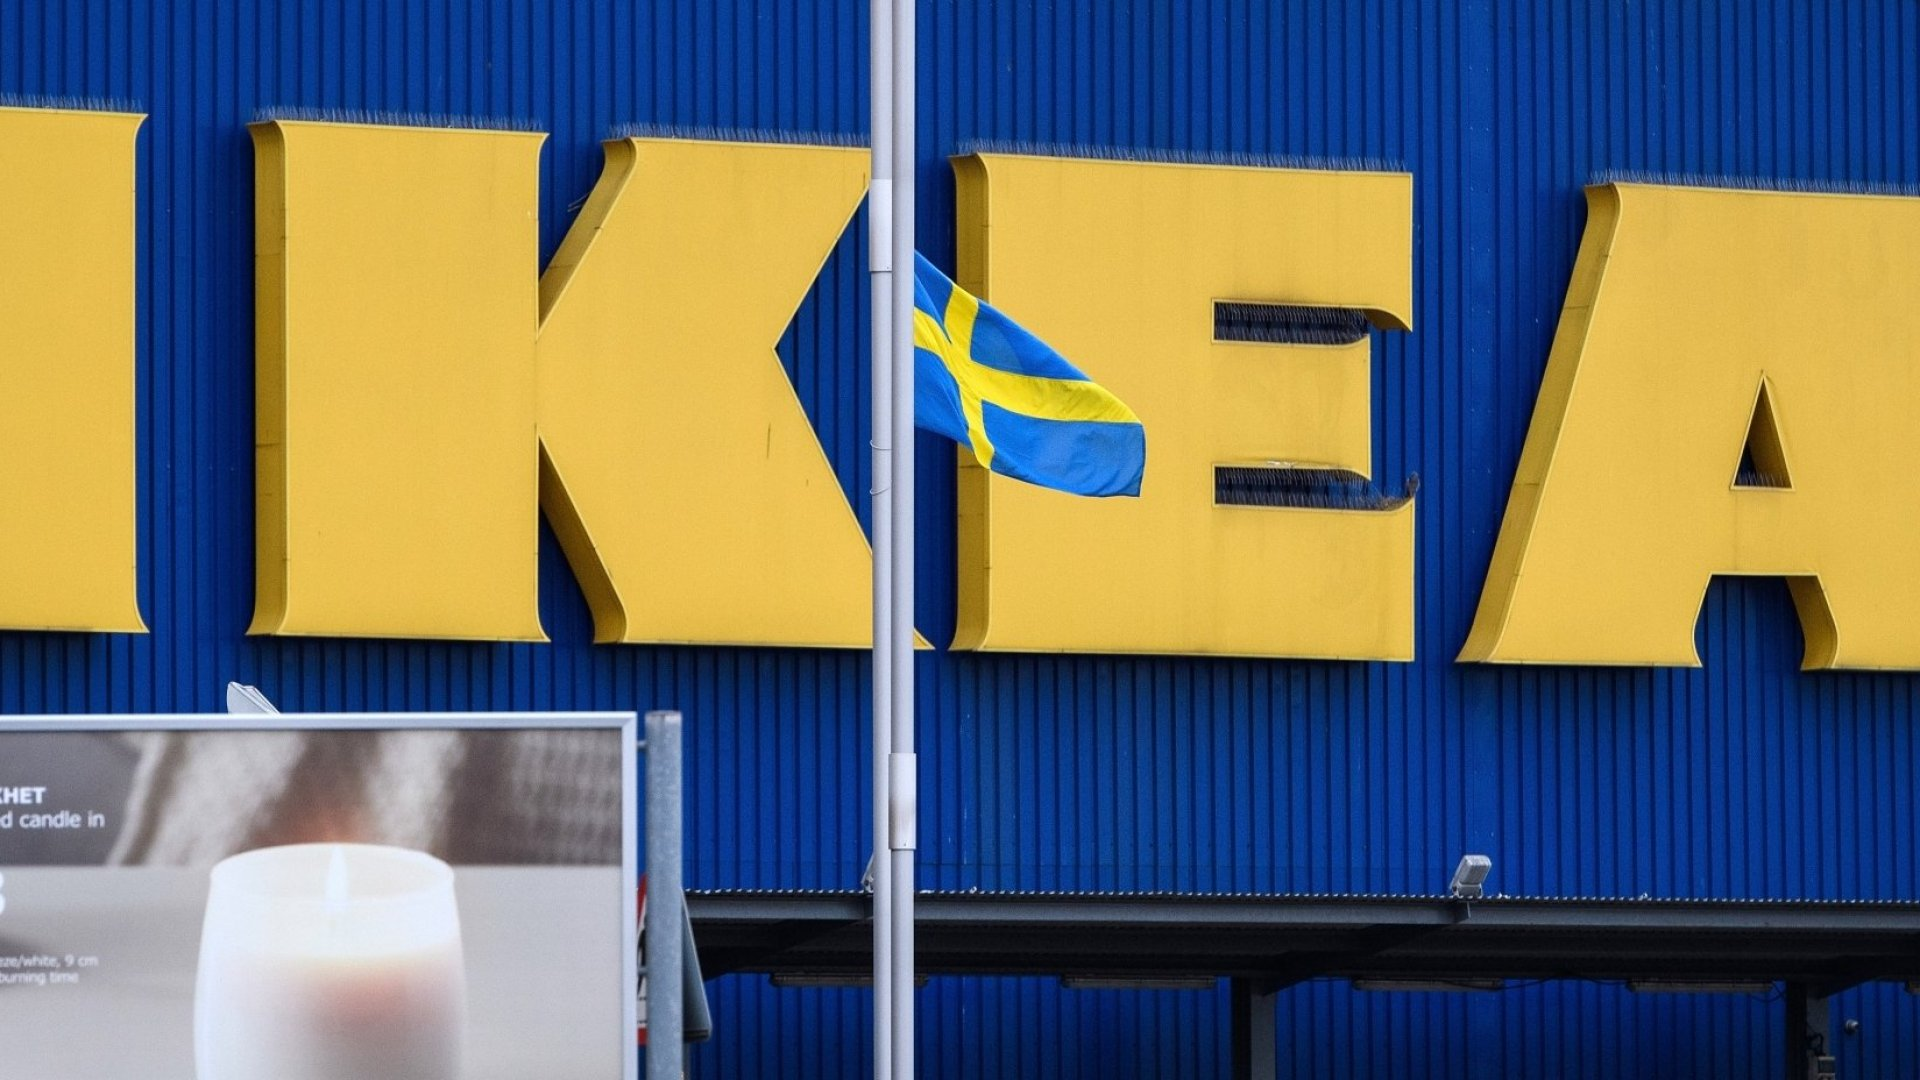 The Swedish flag is flown at half-mast outside a branch of the Ikea furniture store as a tribute to company founder Ingvar Kamprad, on January 29, 2018, in Wembley, England. Kamprad, who died on January 27, aged 91, started the company in Sweden when he was just 17 years old.